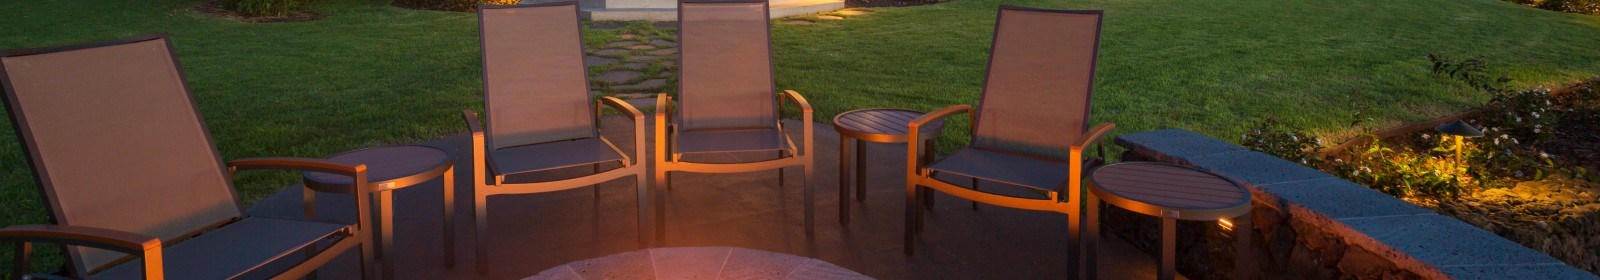 Spruce up for Spring with a new outdoor living space